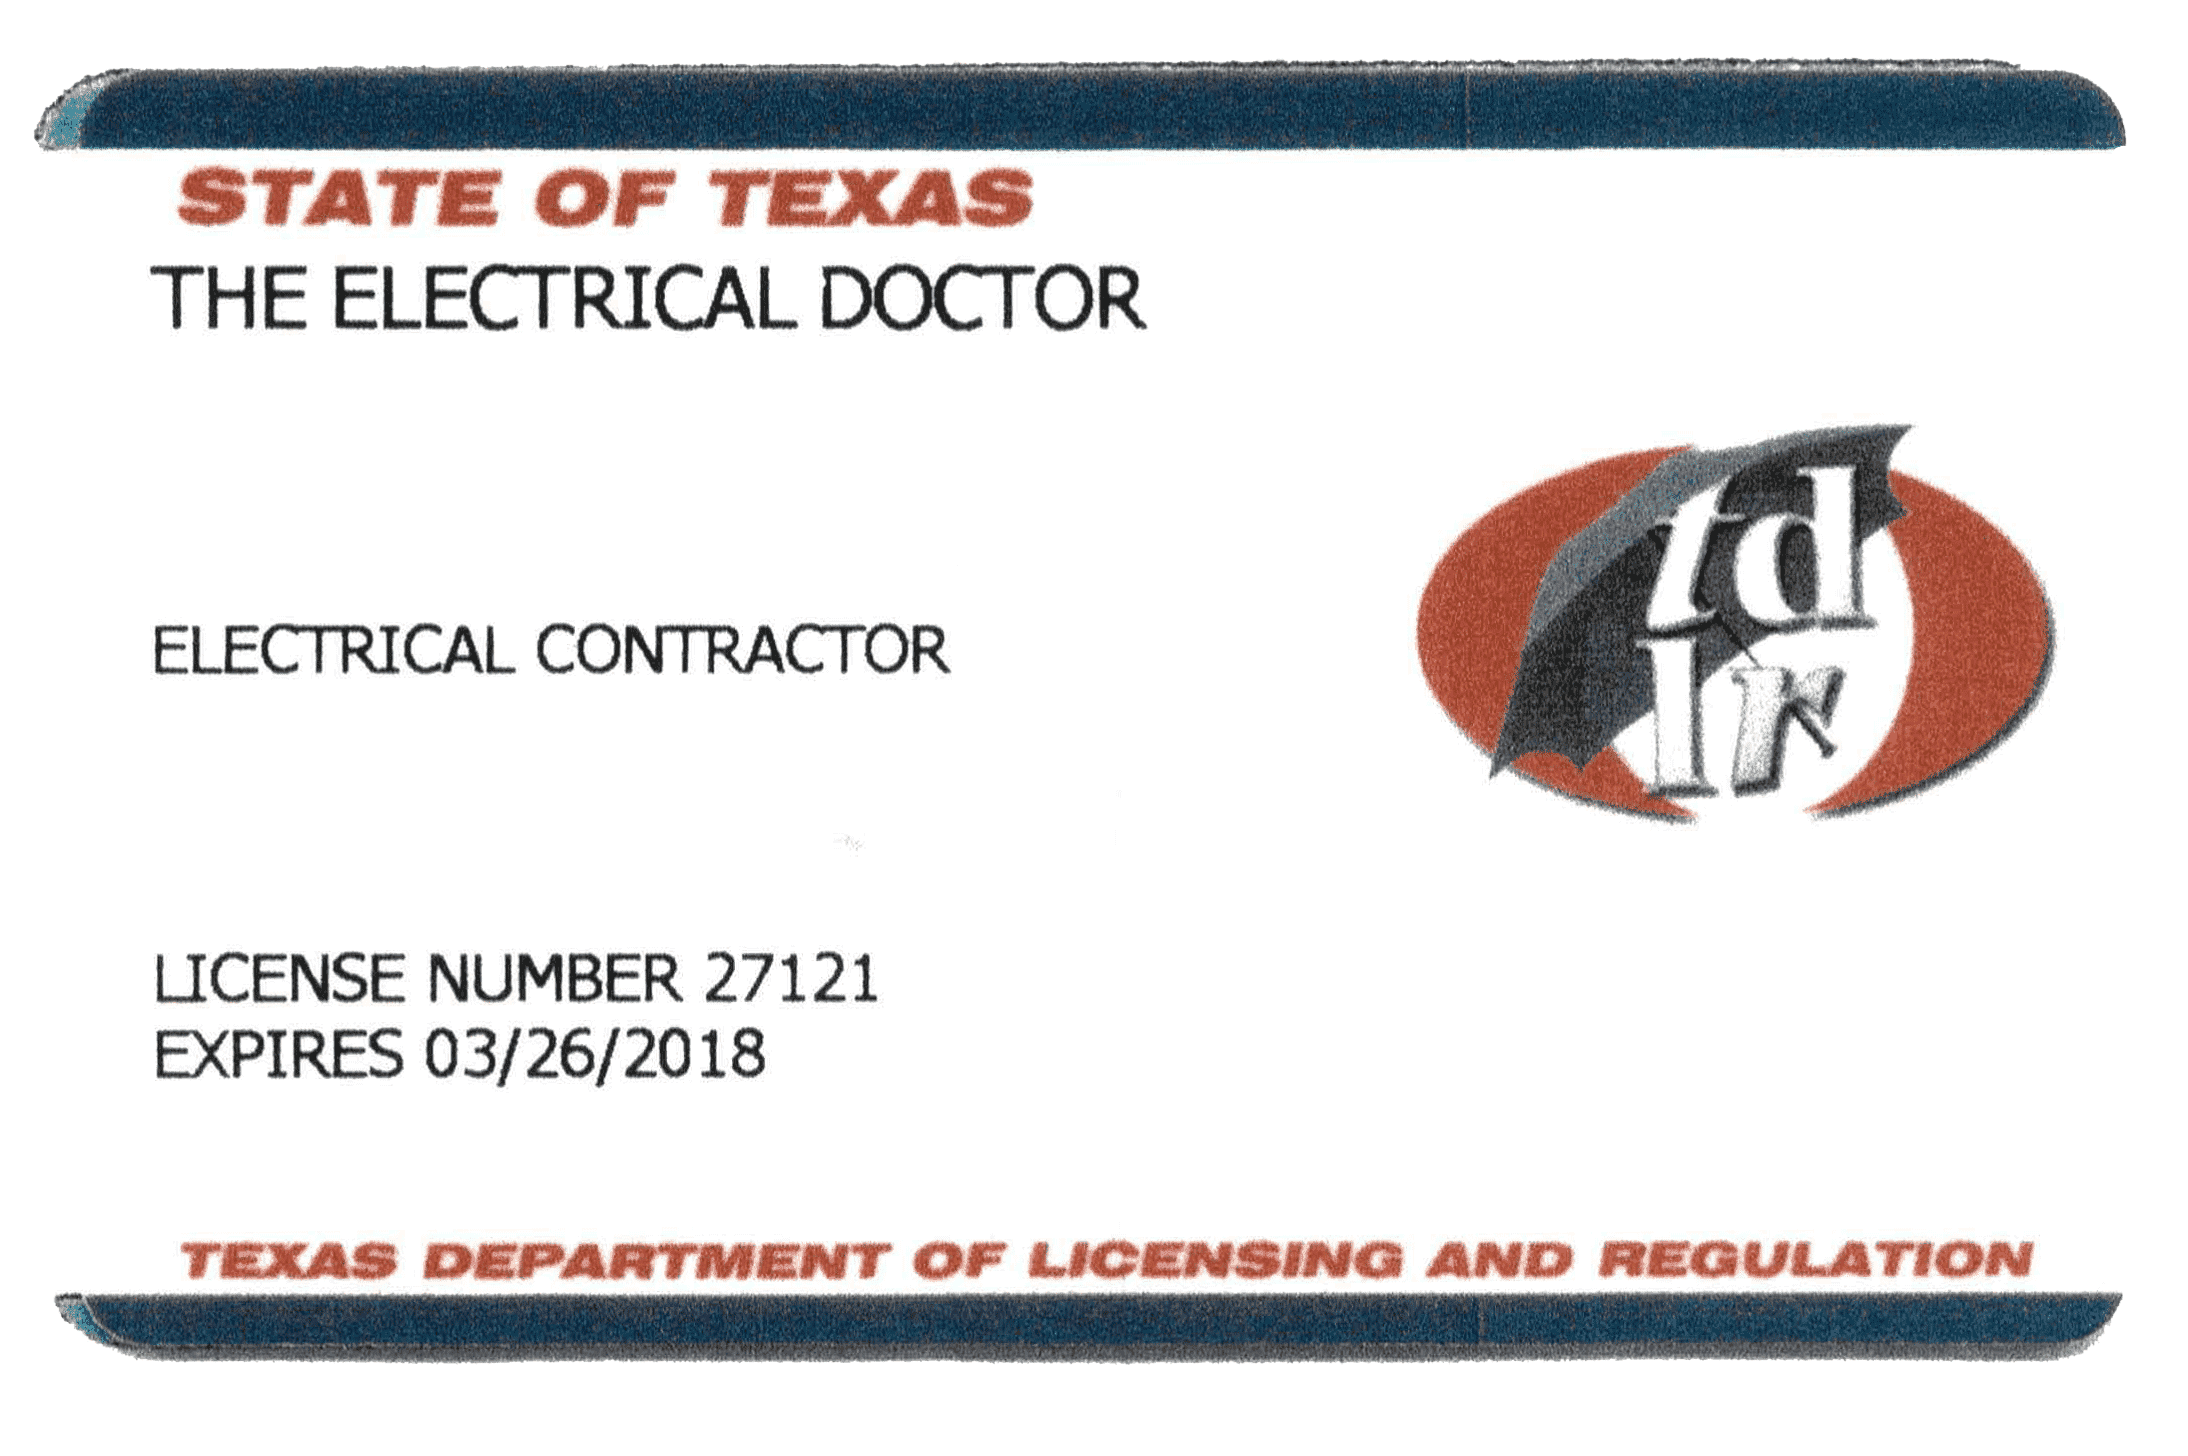 Electrical Doctor licensed electrician